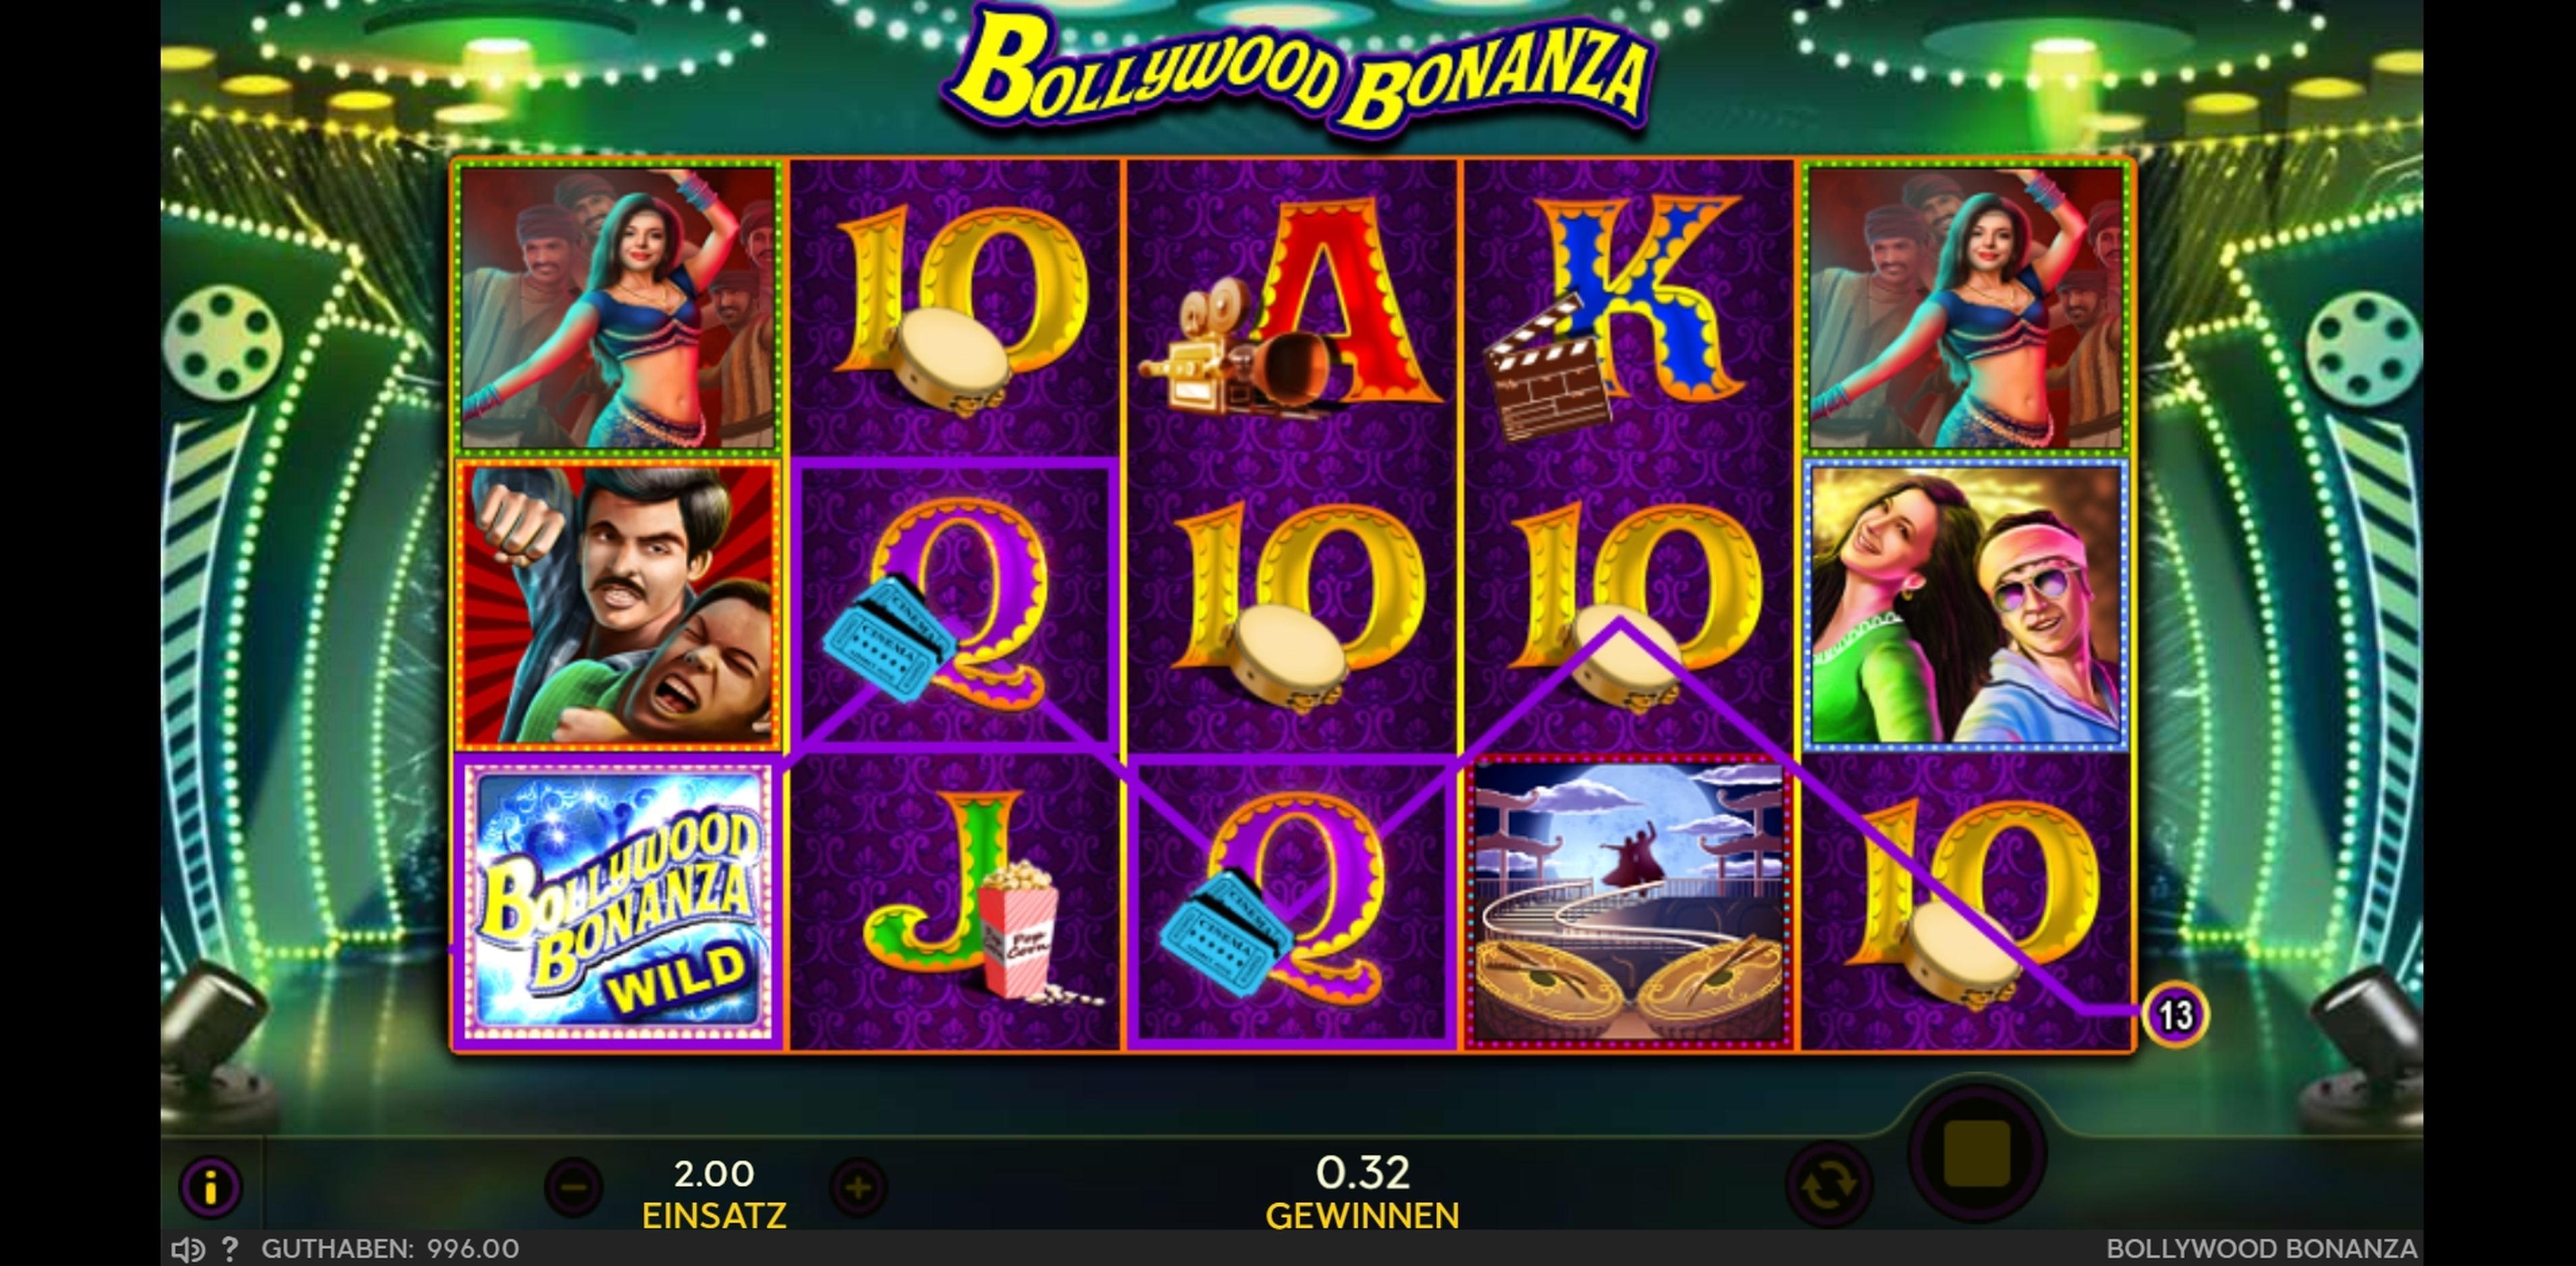 Win Money in Bollywood Bonanza Free Slot Game by 888 Gaming